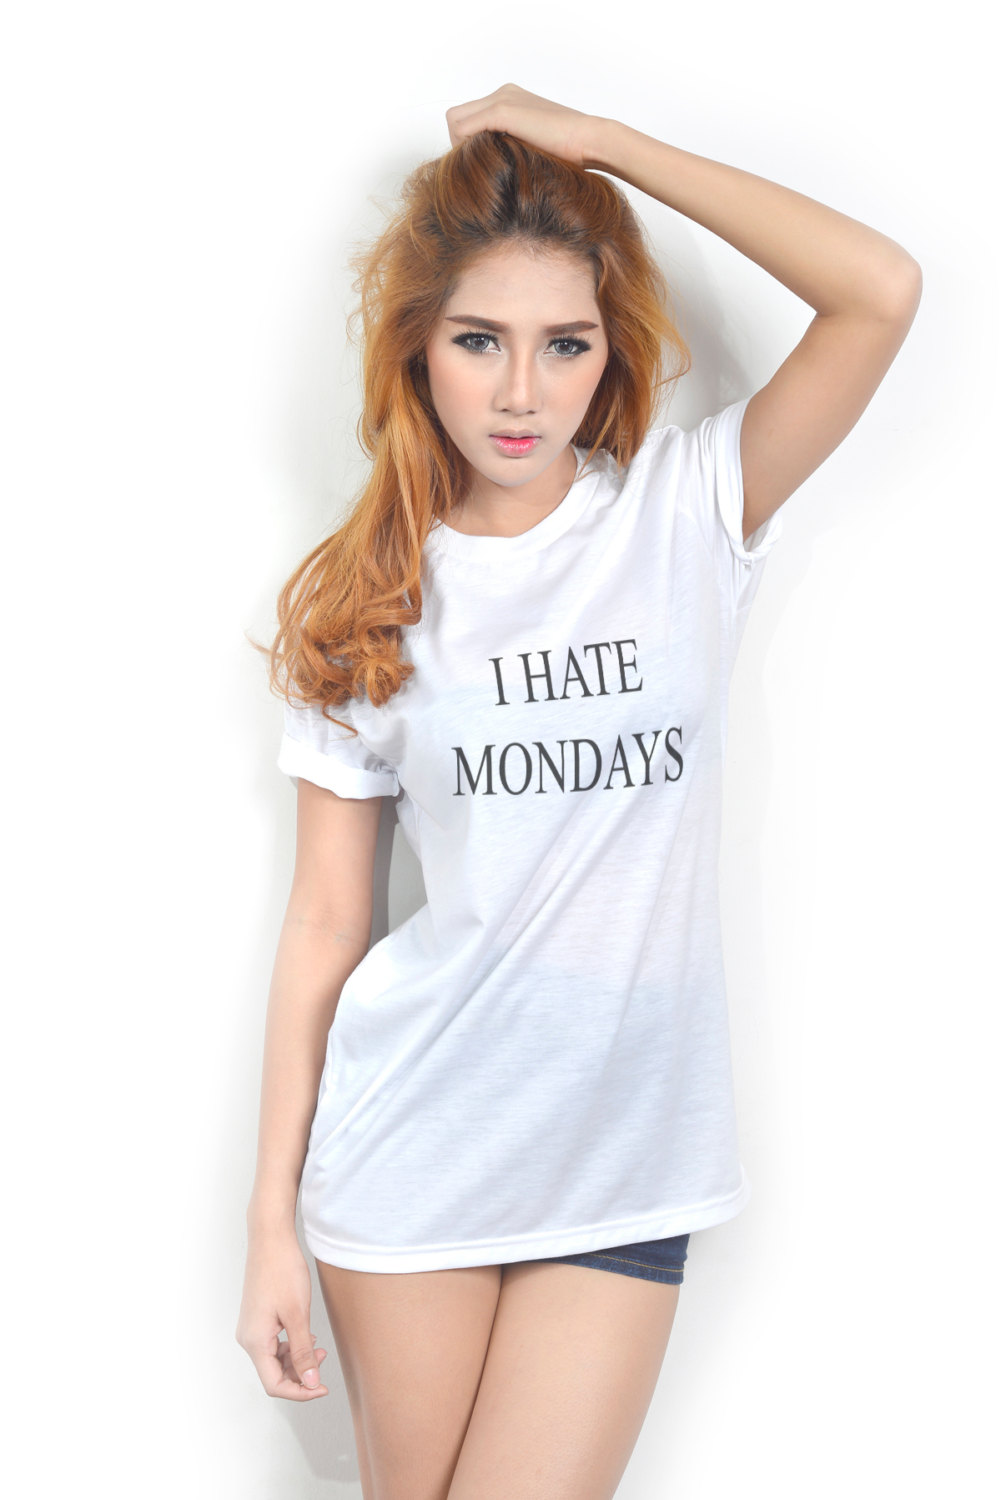 I hate monday t shirt tshirt trendy women clothing top tumblr shirt womens tshirts